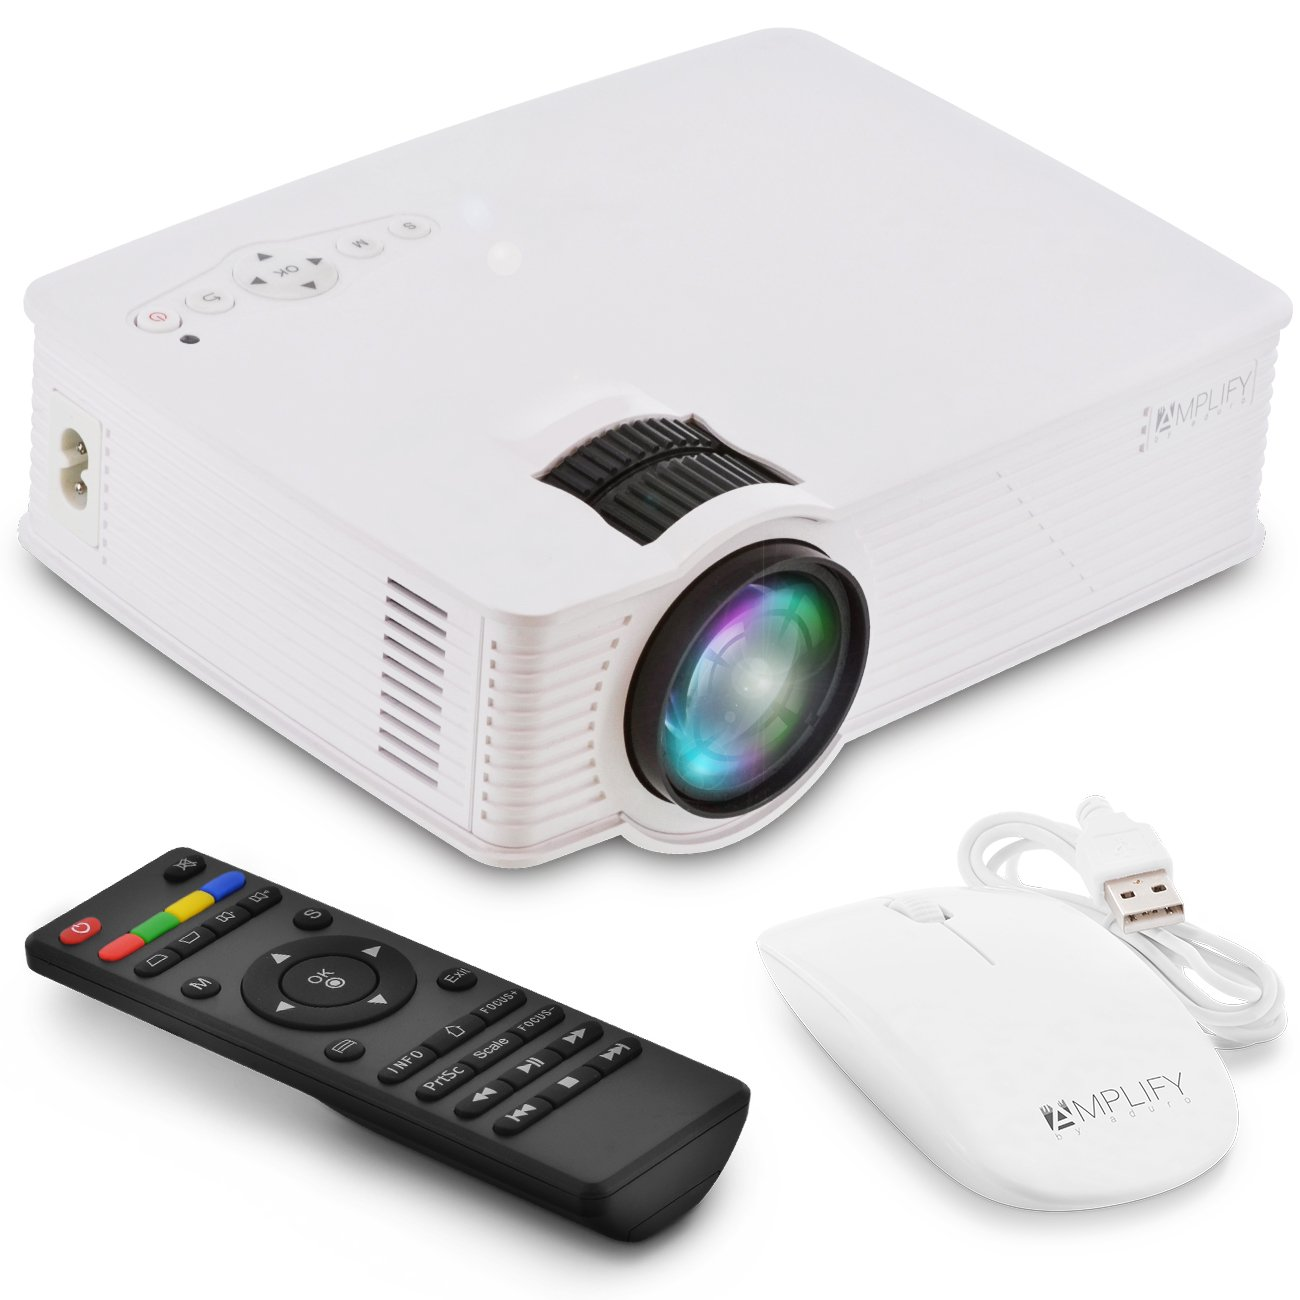 Aduro Smart LED WiFi Video Projector, Built-in Android OS Apps, Wireless Full 1080P HD Portable Home Entertainment Cinema Theater System, Remote + Mouse Included - Stream Directly to Projector